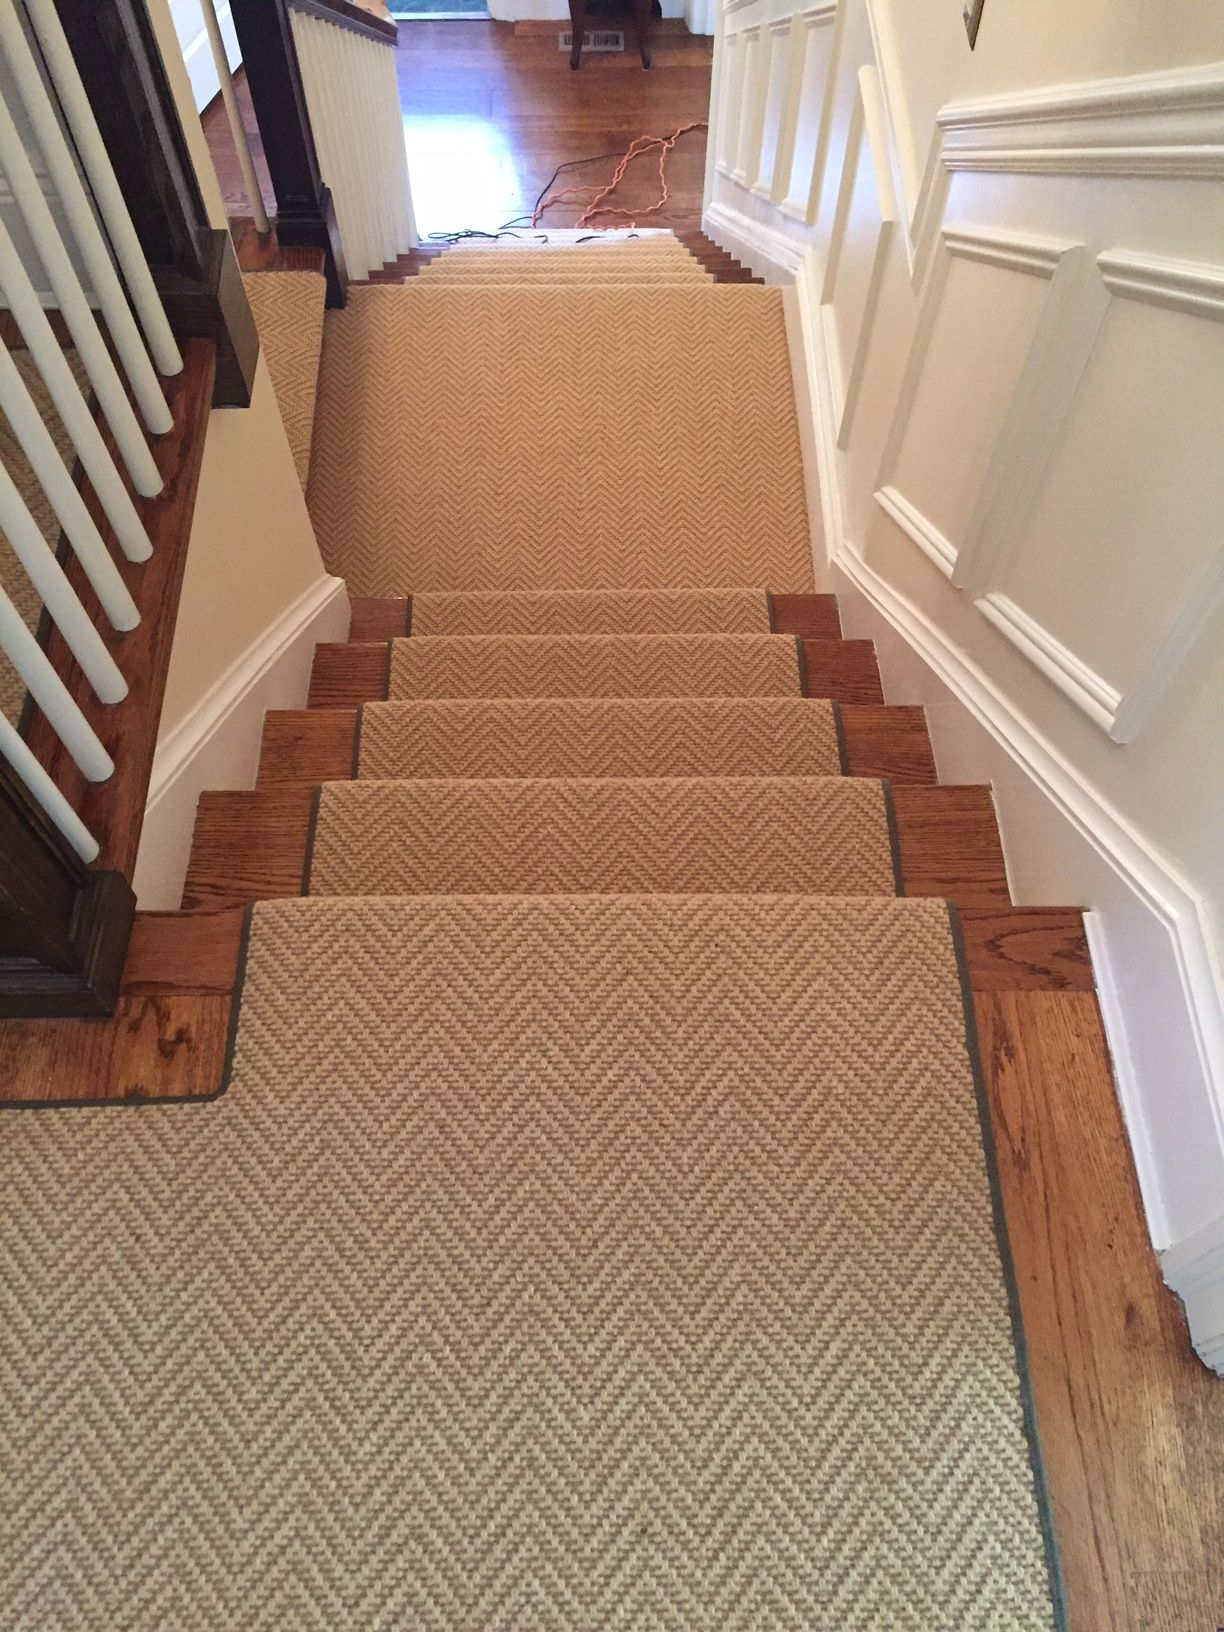 Install Of Herringbone Patterned Carpet On Steps And Landing With   Patterned Carpet For Stairs And Landing   Carpeting   Middle Open Concept   Diamond Uk Pattern   Striped Stair Carpet Entrance   Victorian Style